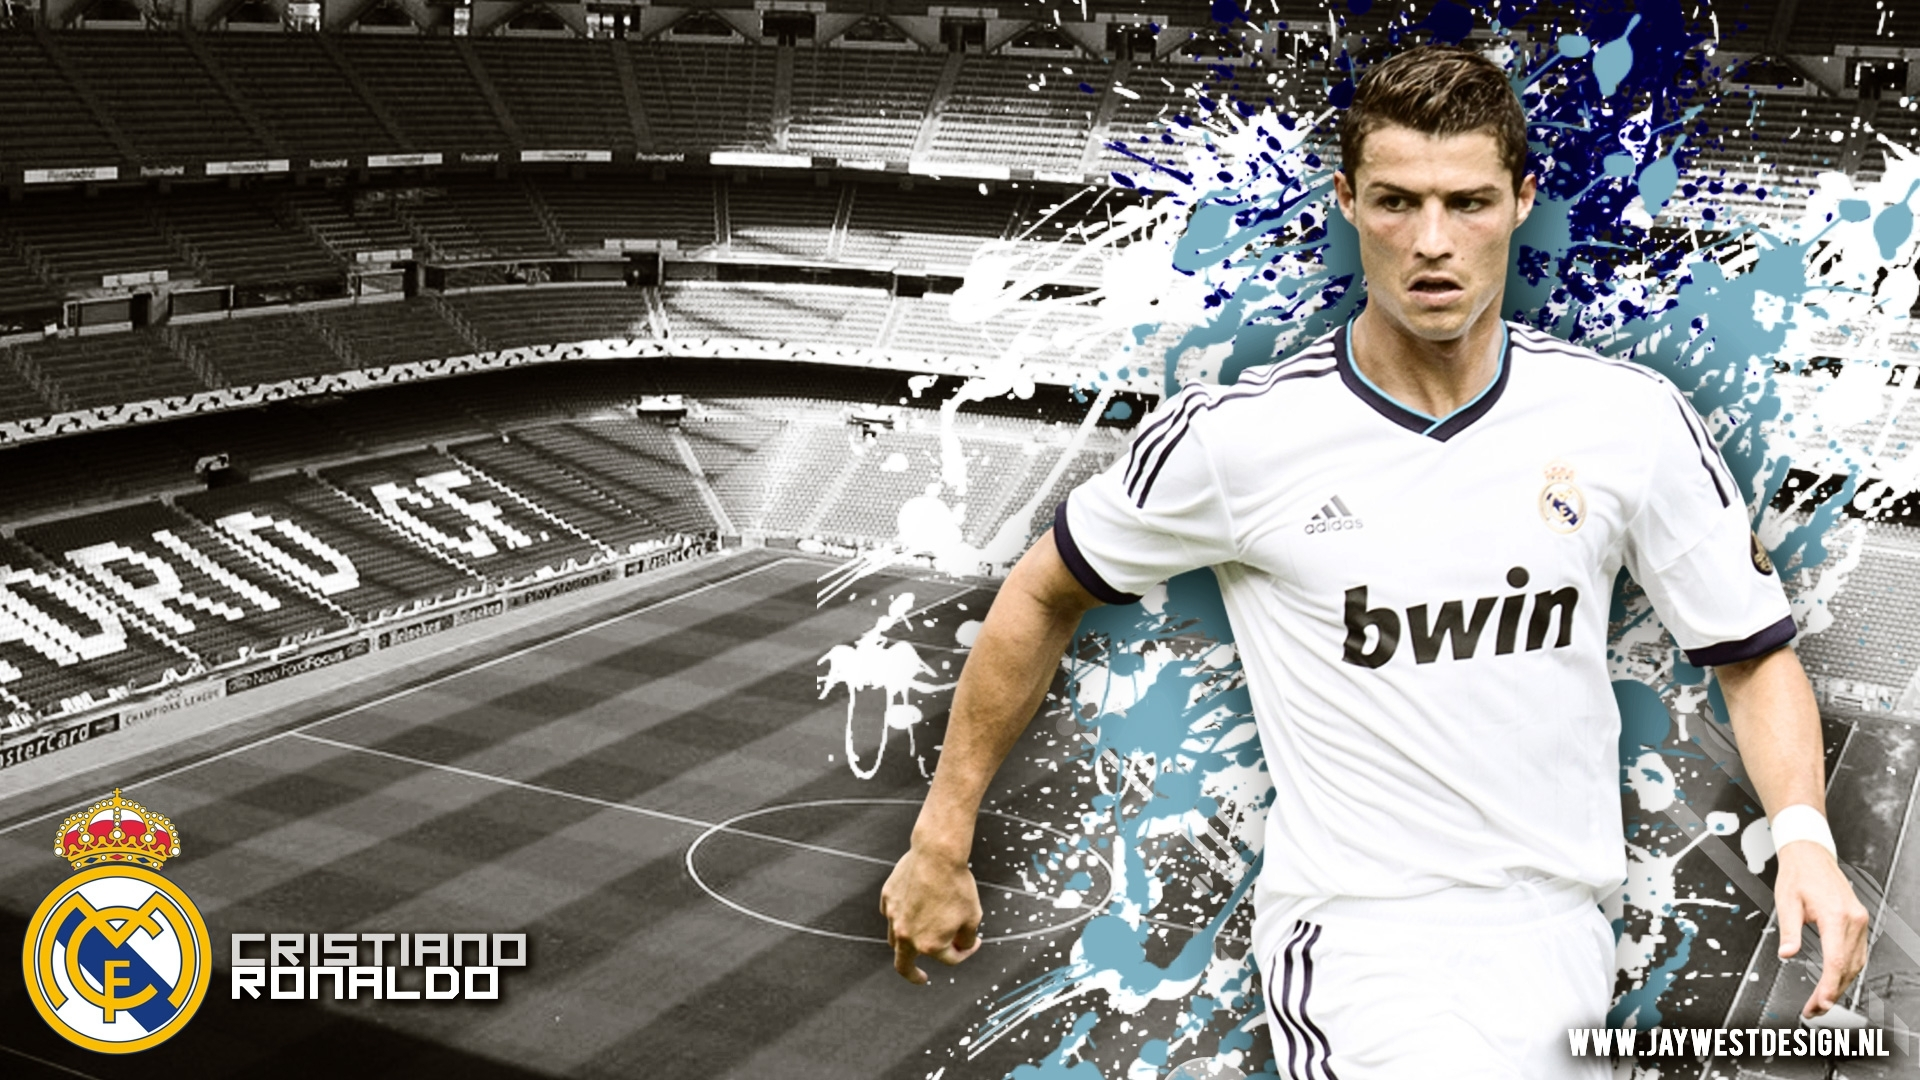 football real madrid wallpaper hd 2013 - http://www.wallpapersoccer